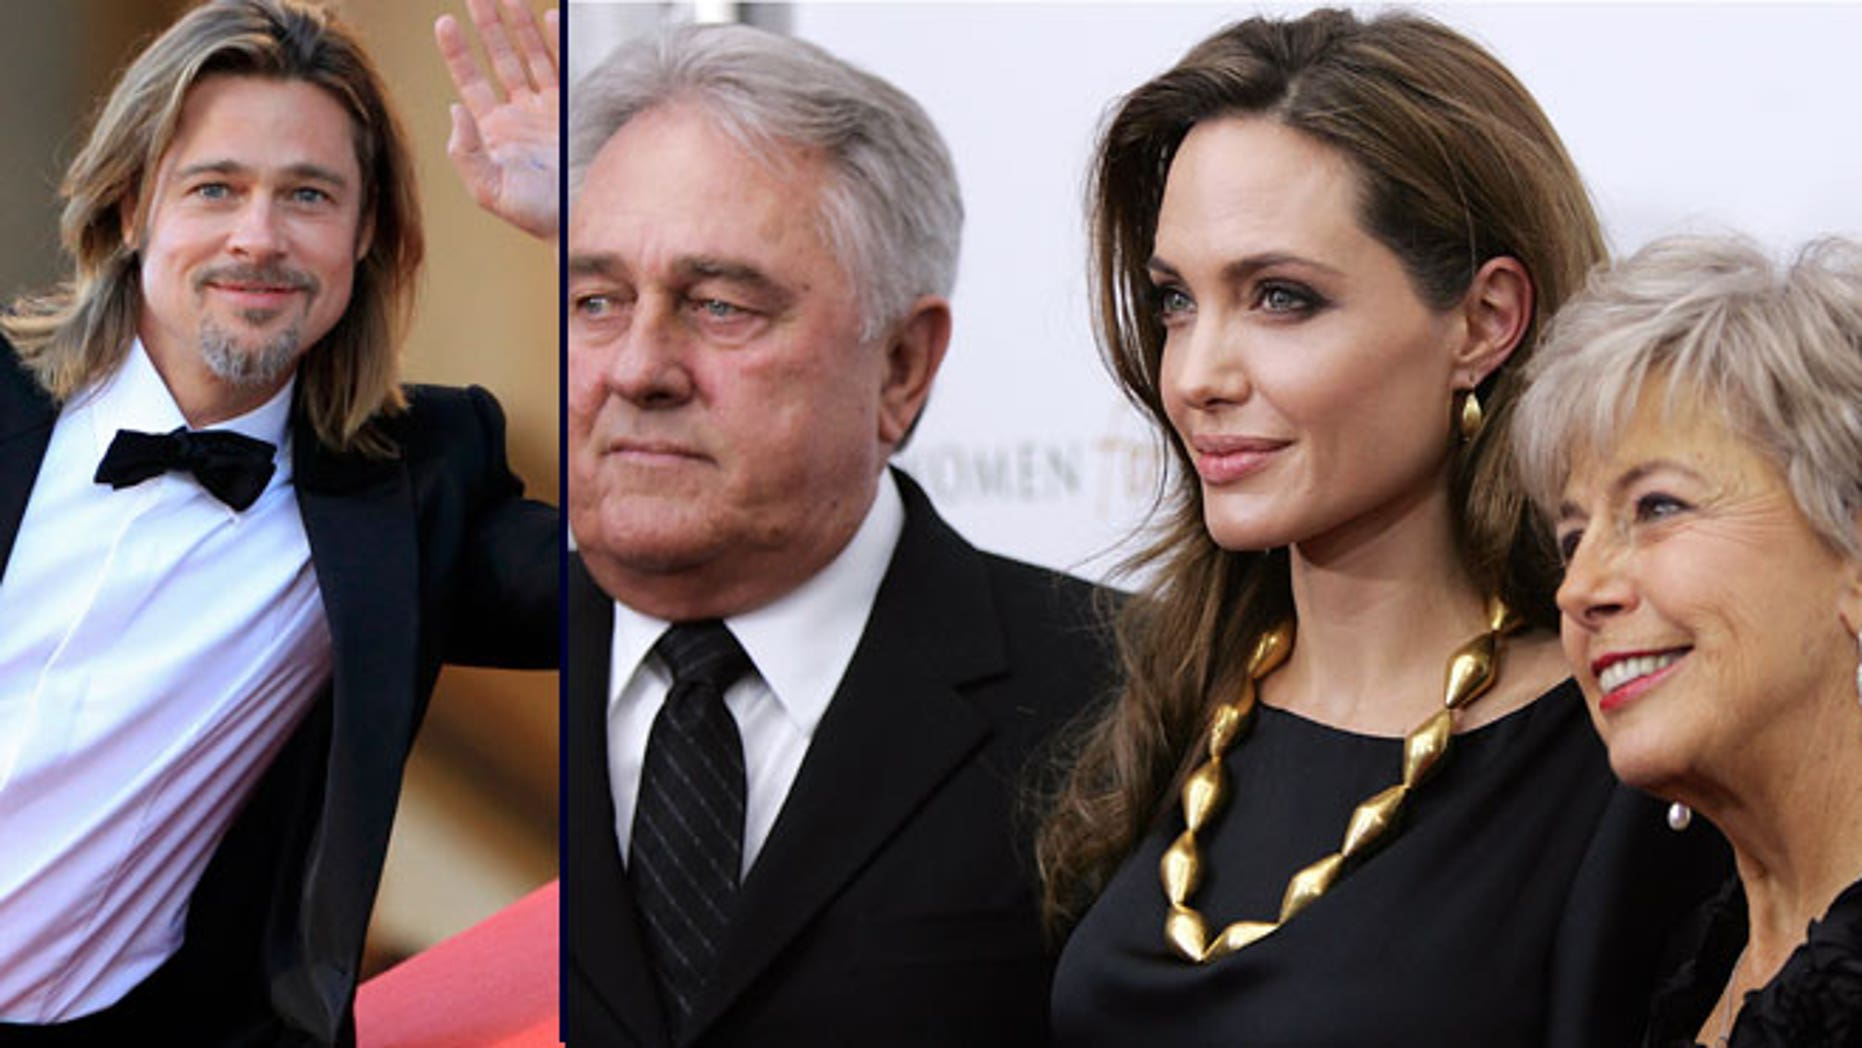 Brad Pitt's parents, seen at right with Angelina Jolie, don't seem to share the same beliefs as their famous son and soon-to-be daughter-in-law.